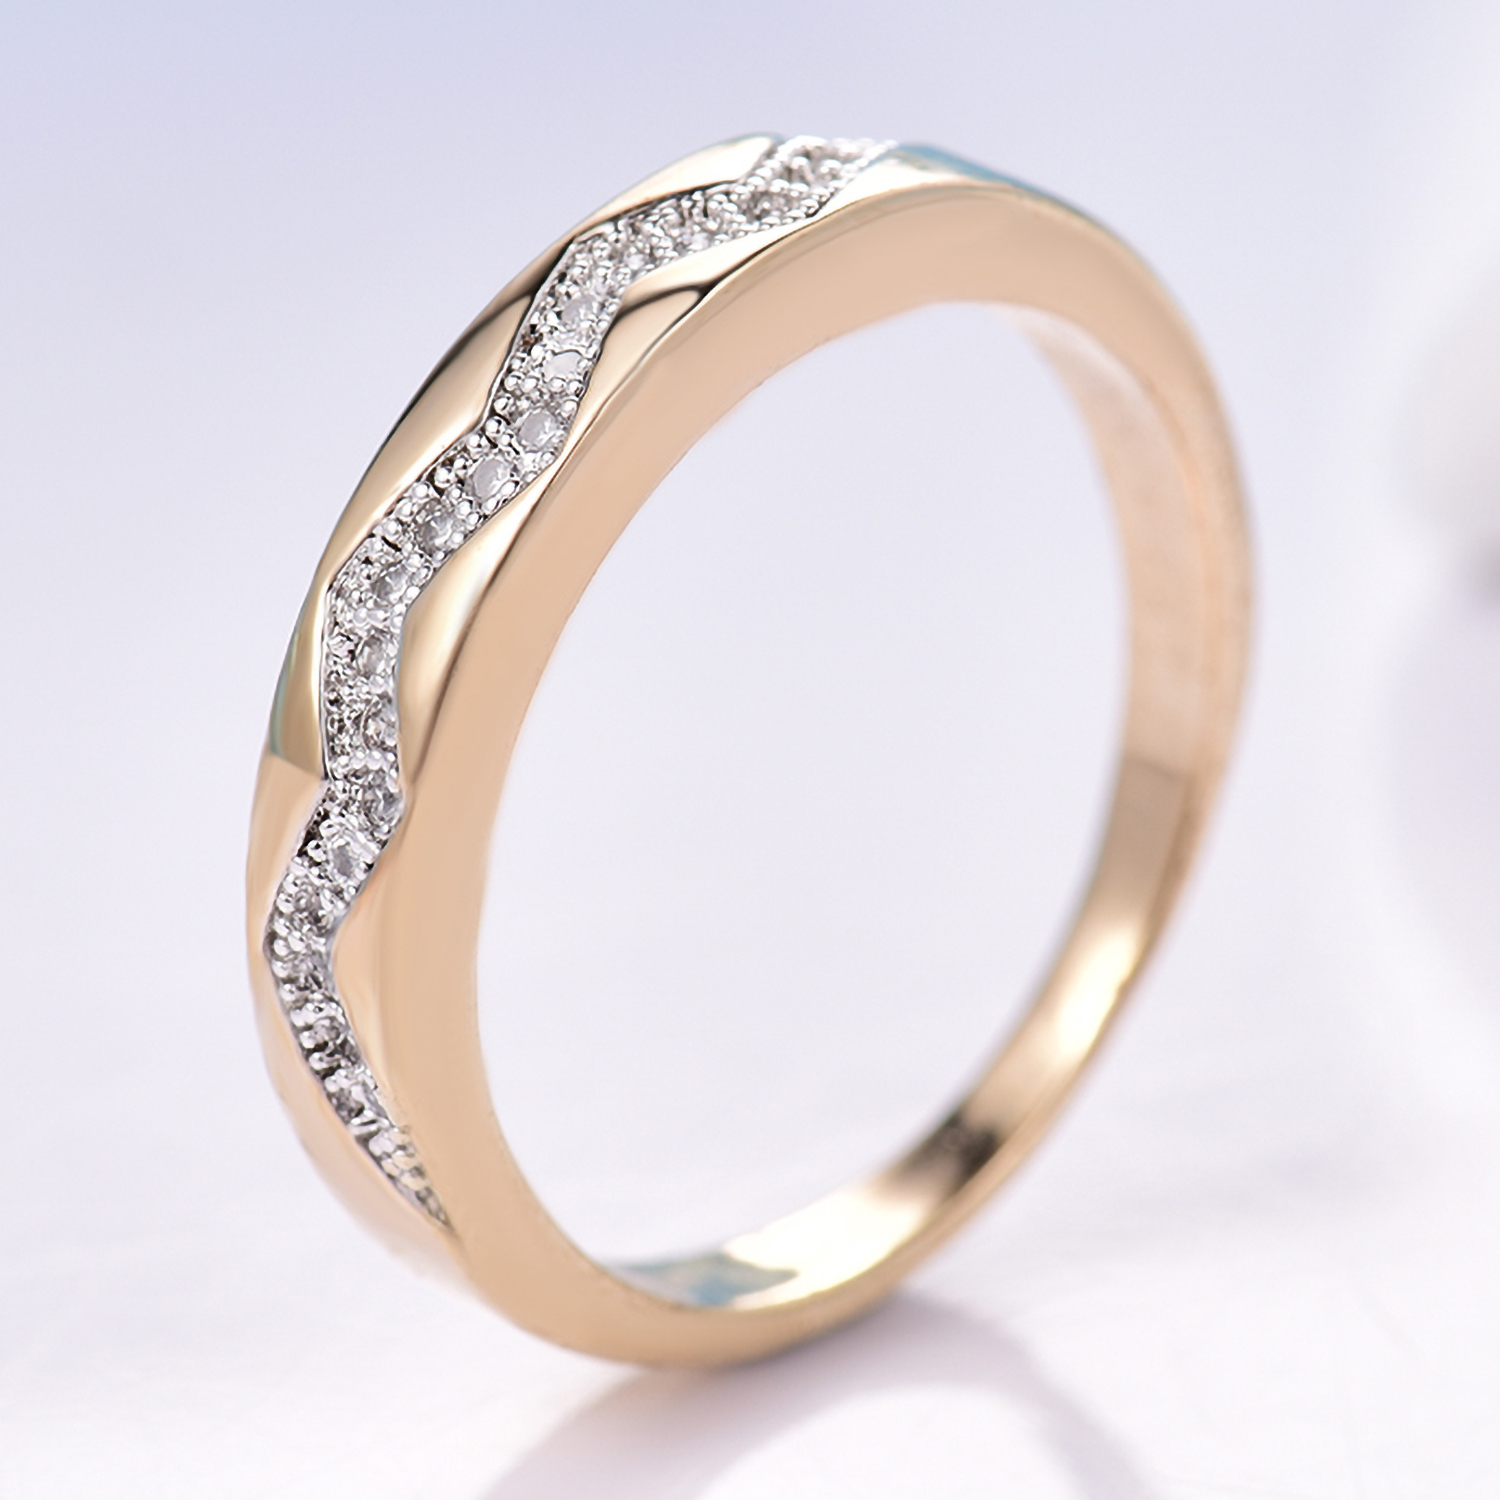 ce6bb746feb0 Wave Lightning Silver   Gold Filled Crystal Sapphire Women Lady Wedding  Ring BOX